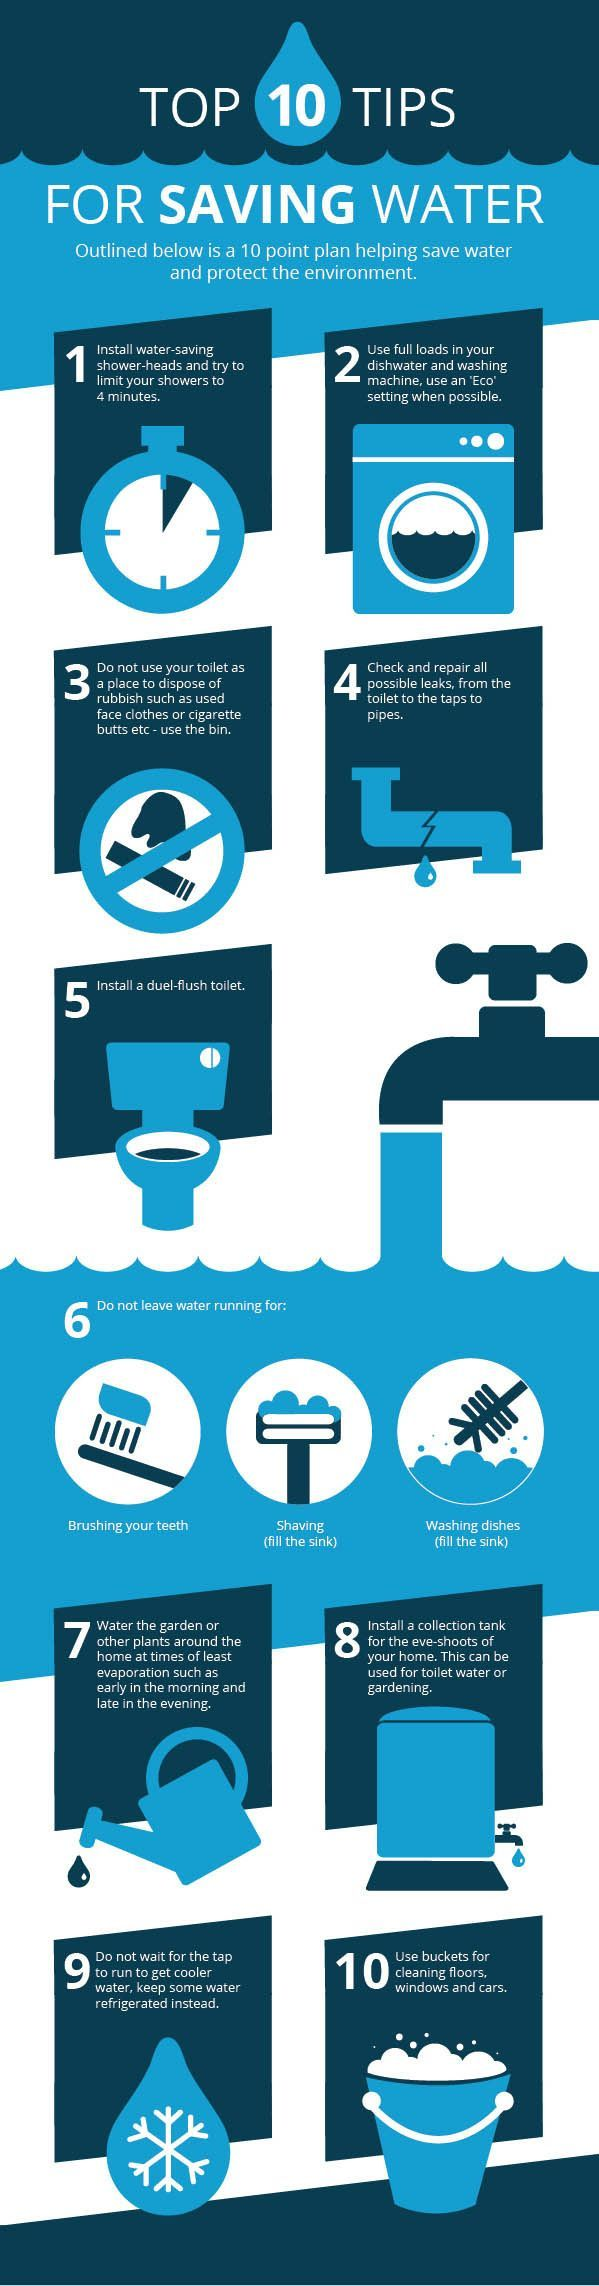 INFOGRAPHIC: 10 tips to save water in your home | Inhabitat - Sustainable Design Innovation, Eco Architecture, Green Building